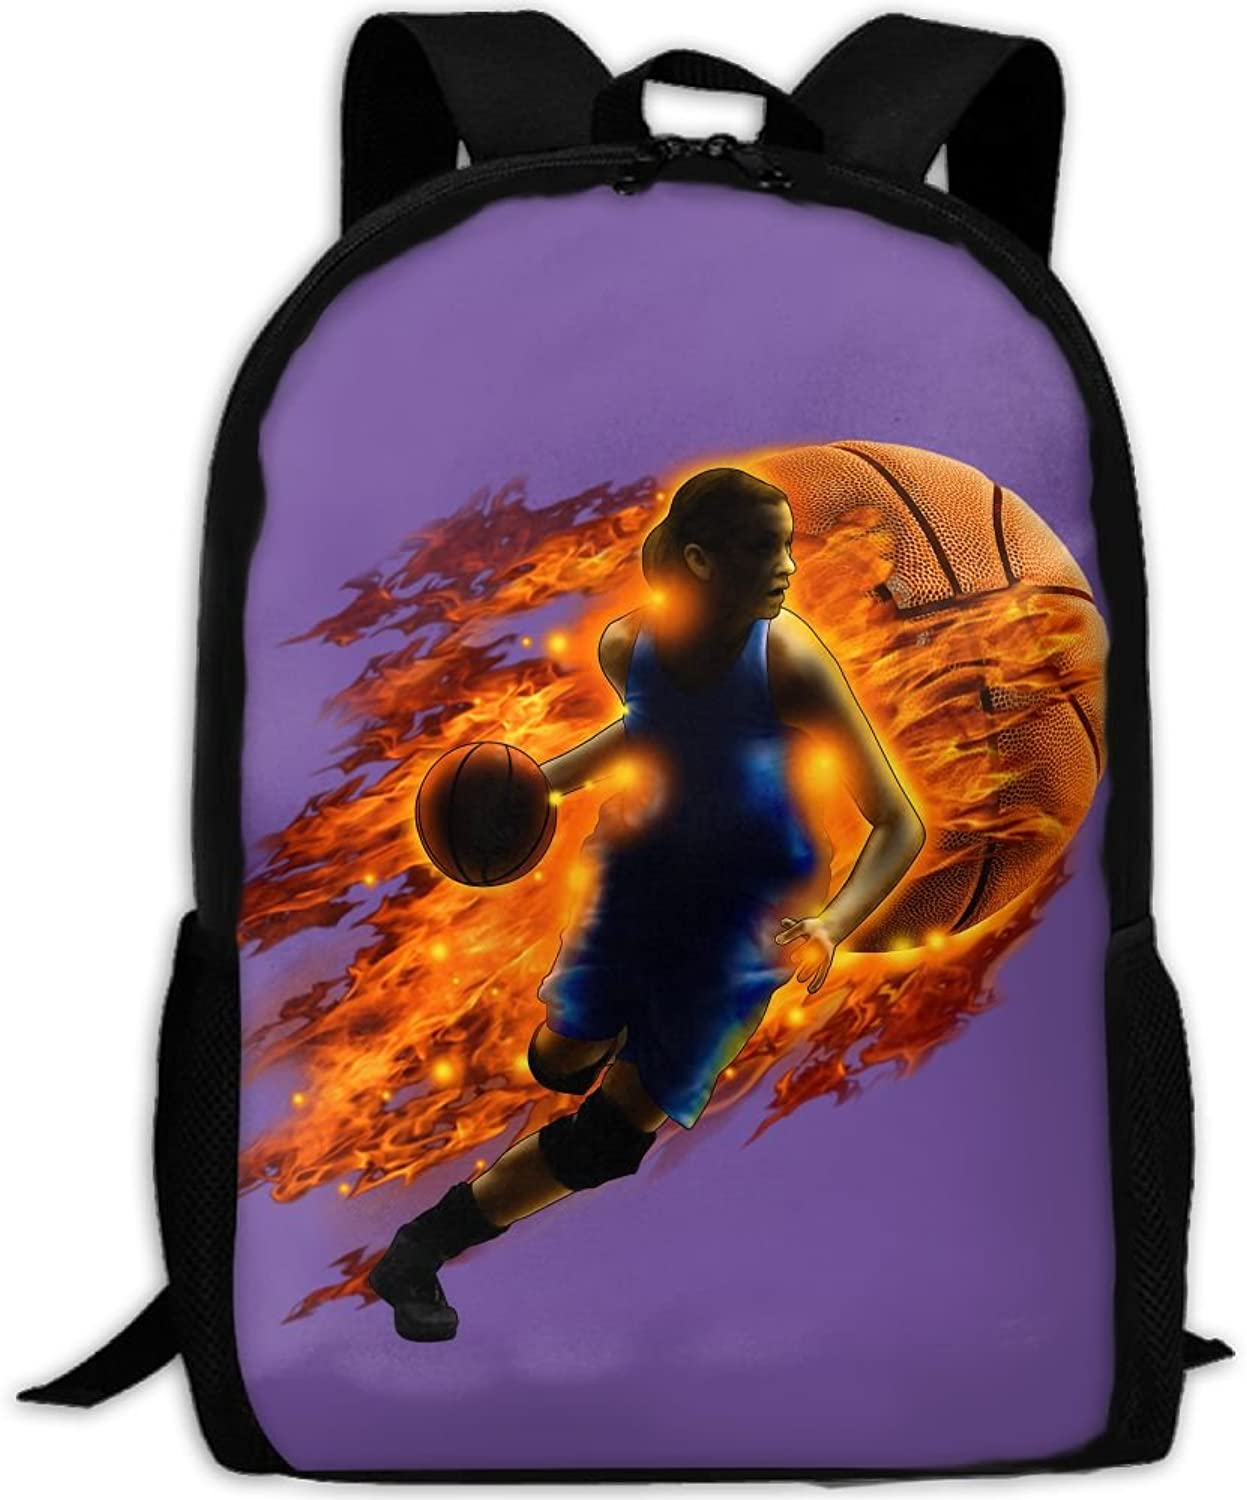 Backpack Laptop Travel Hiking School Bags Female Basketball Player On Fire Daypack Shoulder Bag